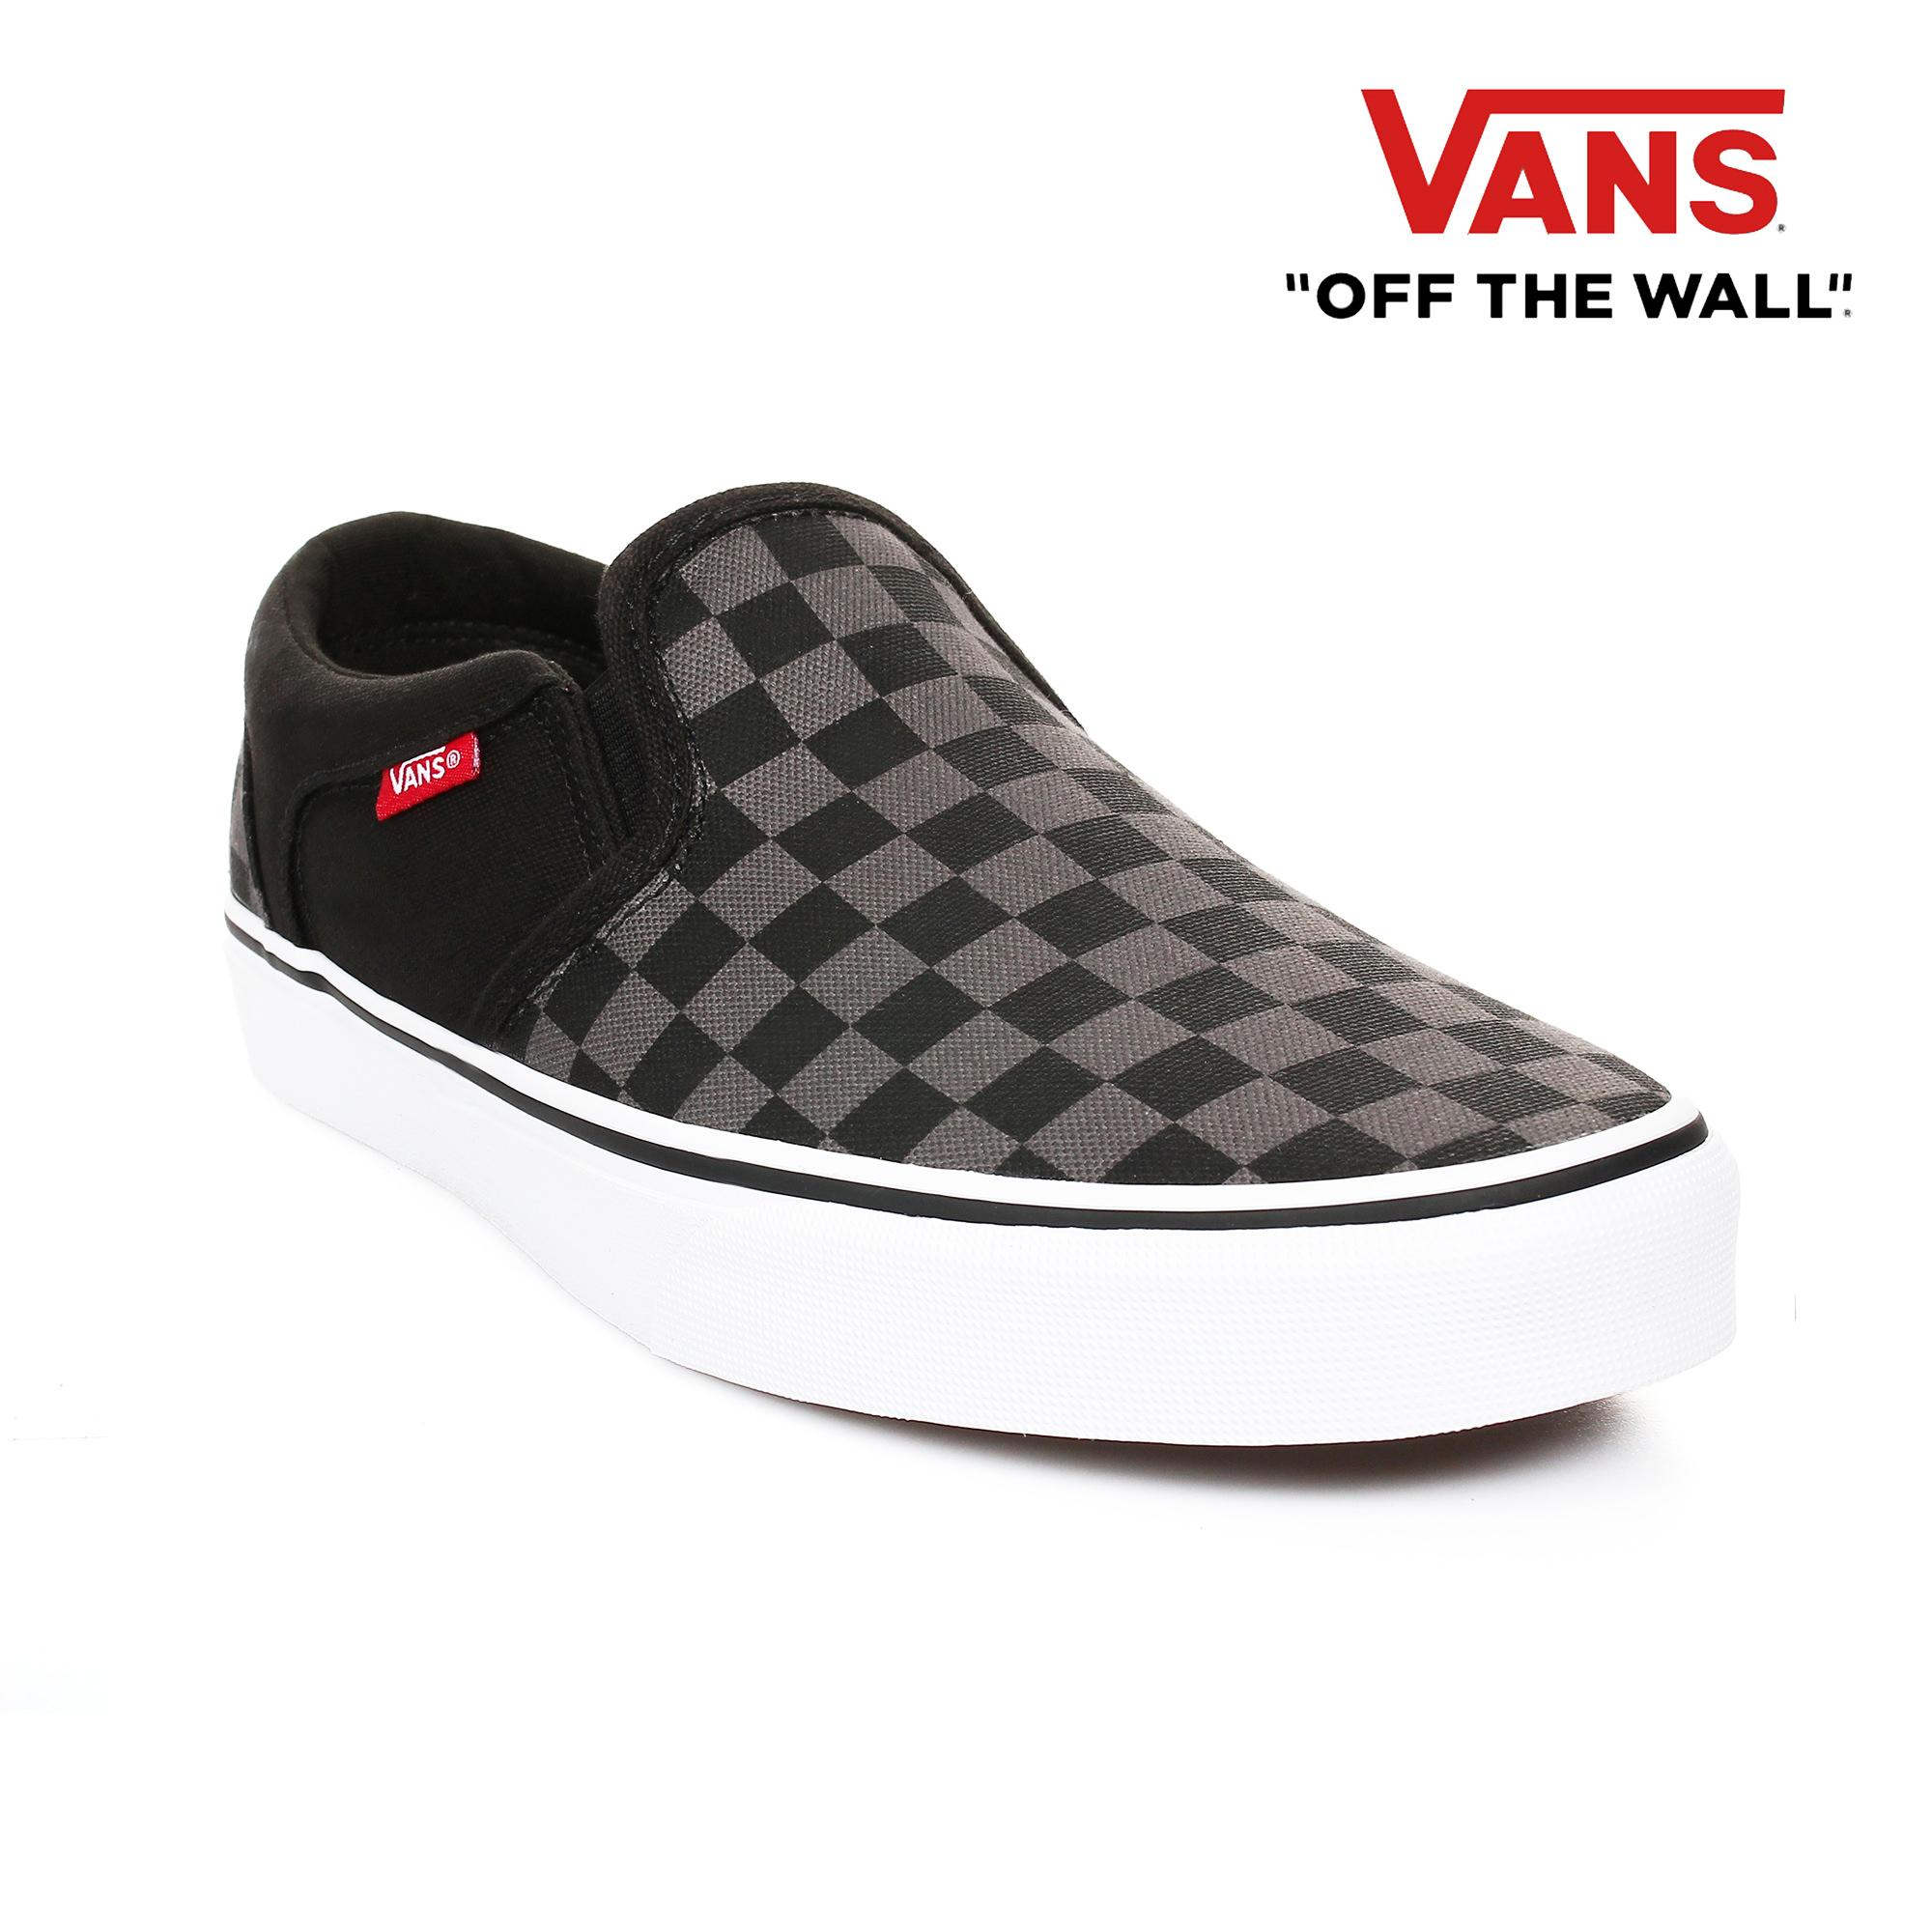 3d032177b9 Vans Shoes for Men Philippines - Vans Men s Shoes for sale - prices ...